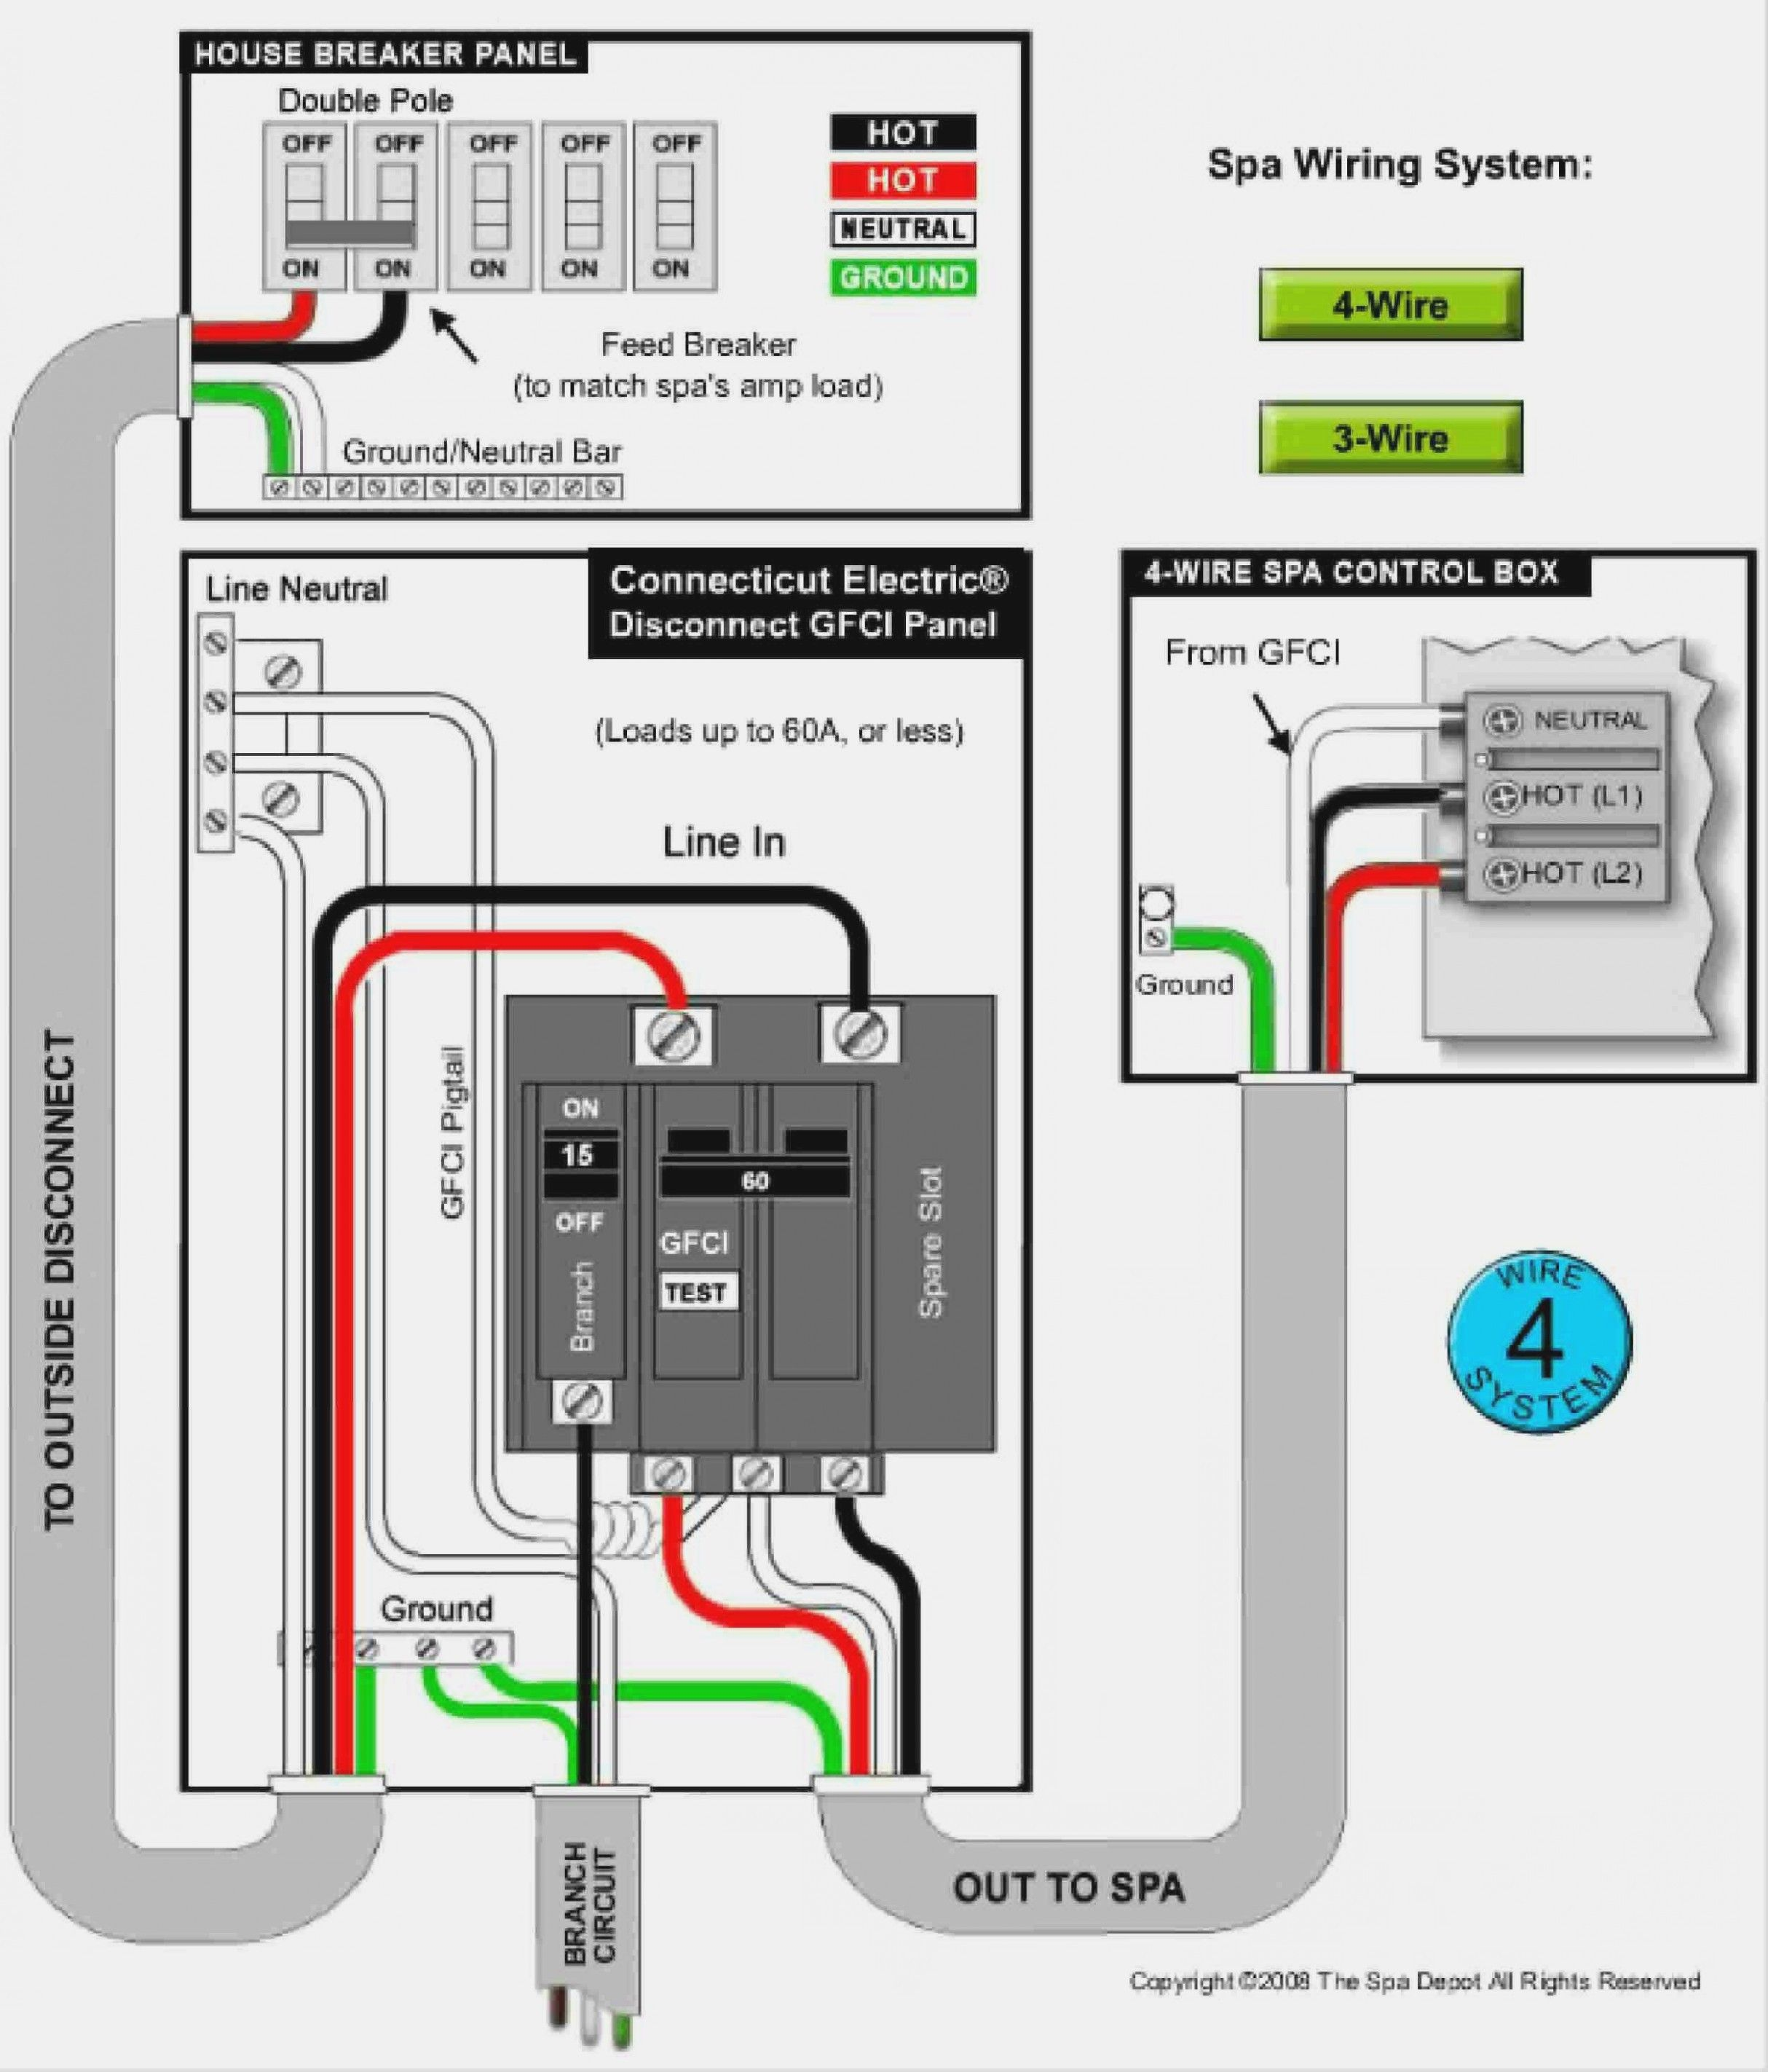 hot tub control wiring schematic wiring diagram var hot tub internal wiring diagram data diagram schematic hot tub control wiring schematic